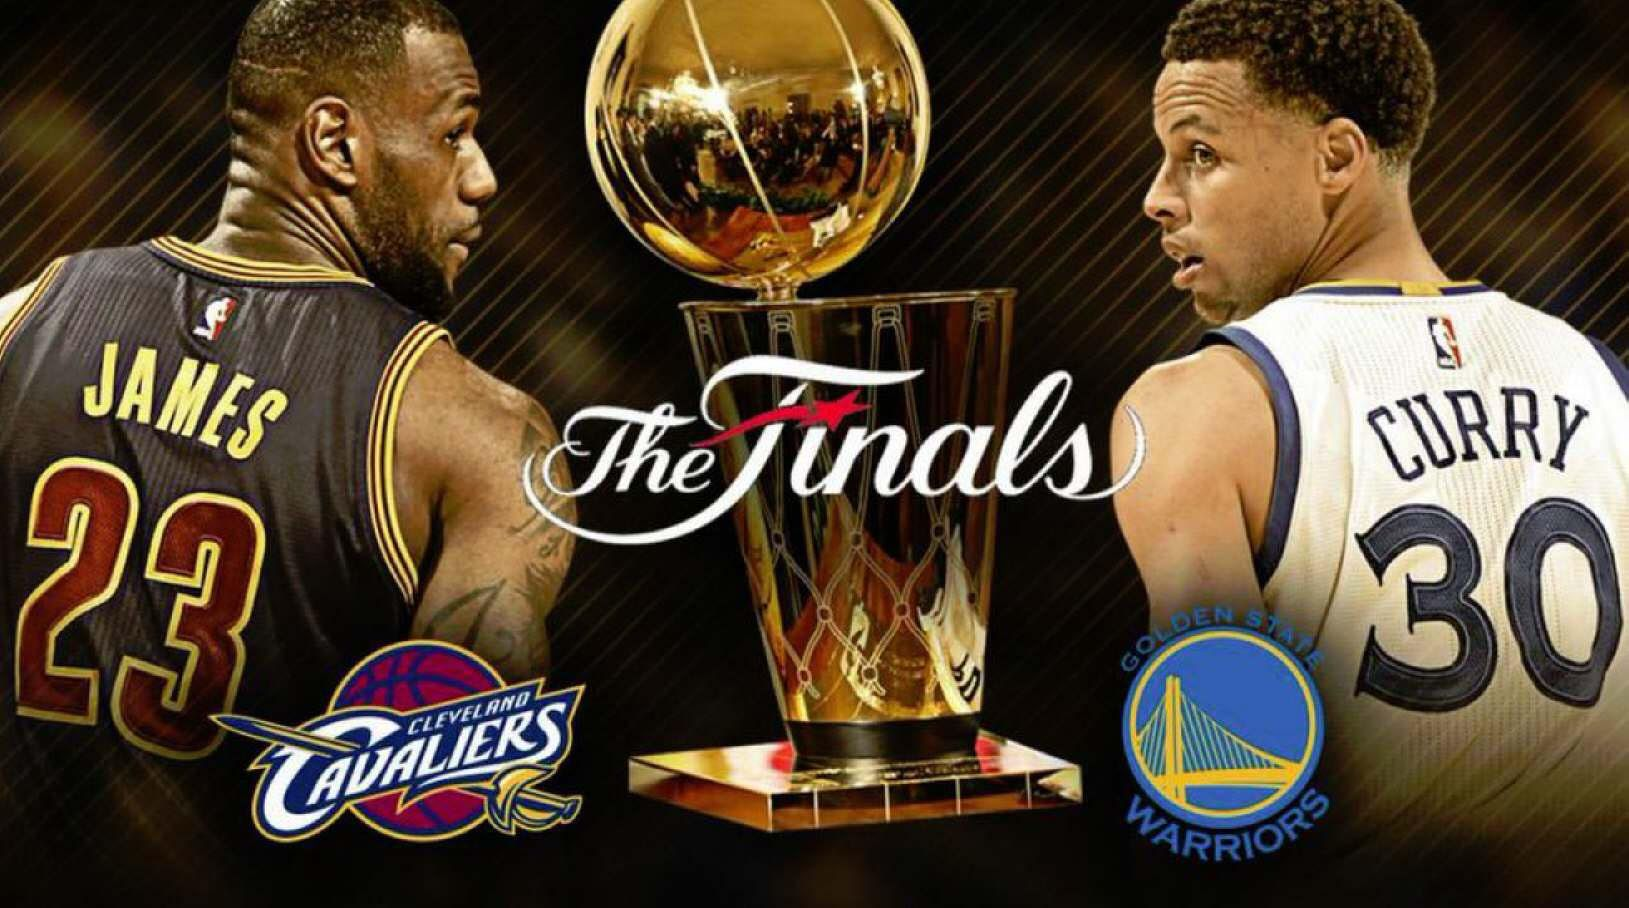 2018 NBA Finals: Golden State Meets Cleveland for 4th Consecutive Year